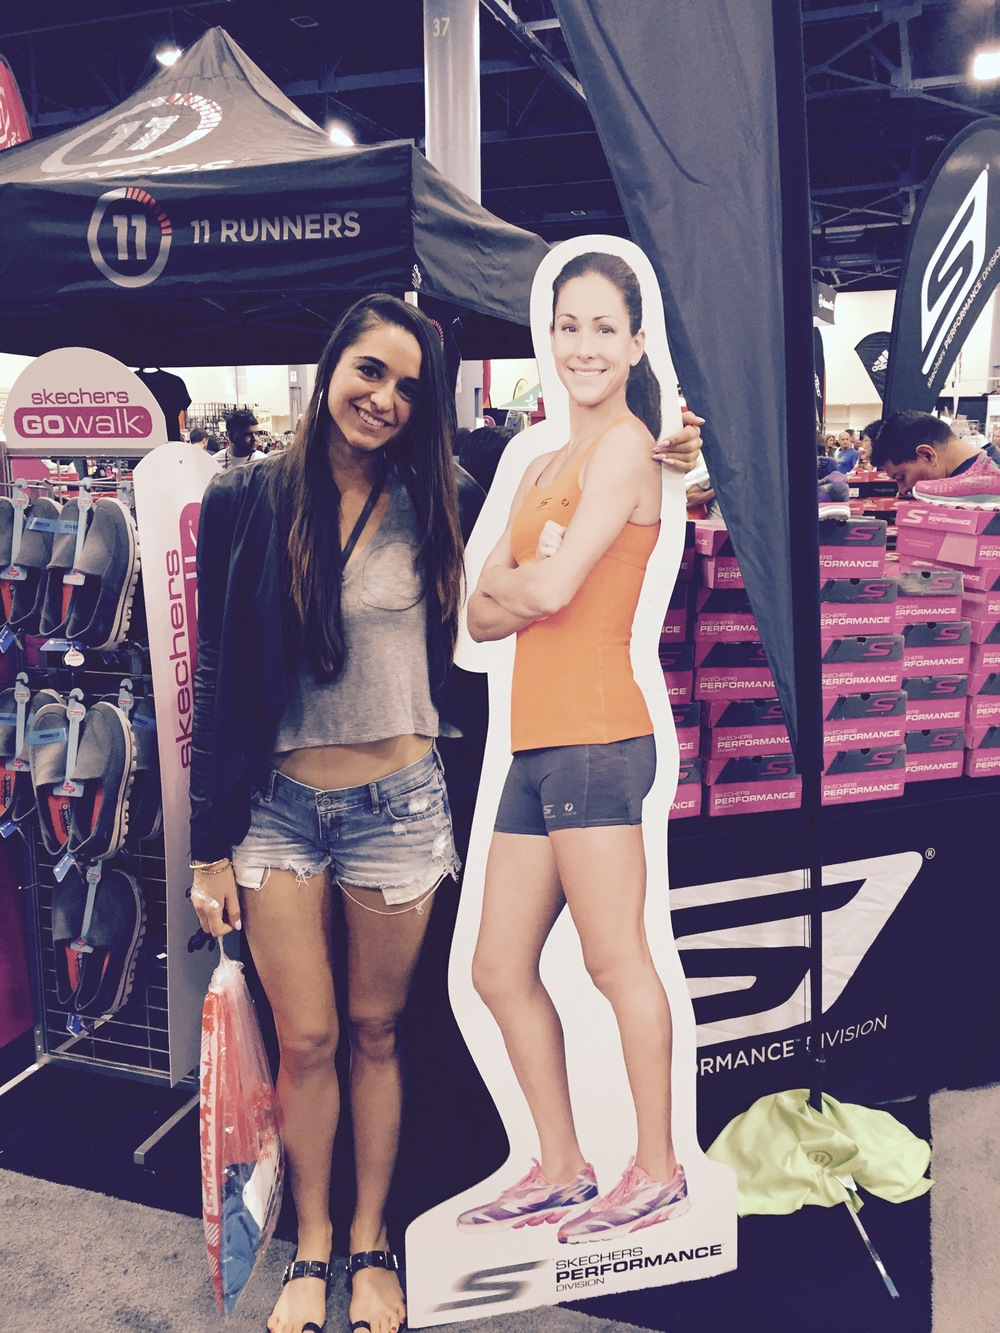 at the Miami Marathon Expo with my runsista herooooo, Kara Goucher.